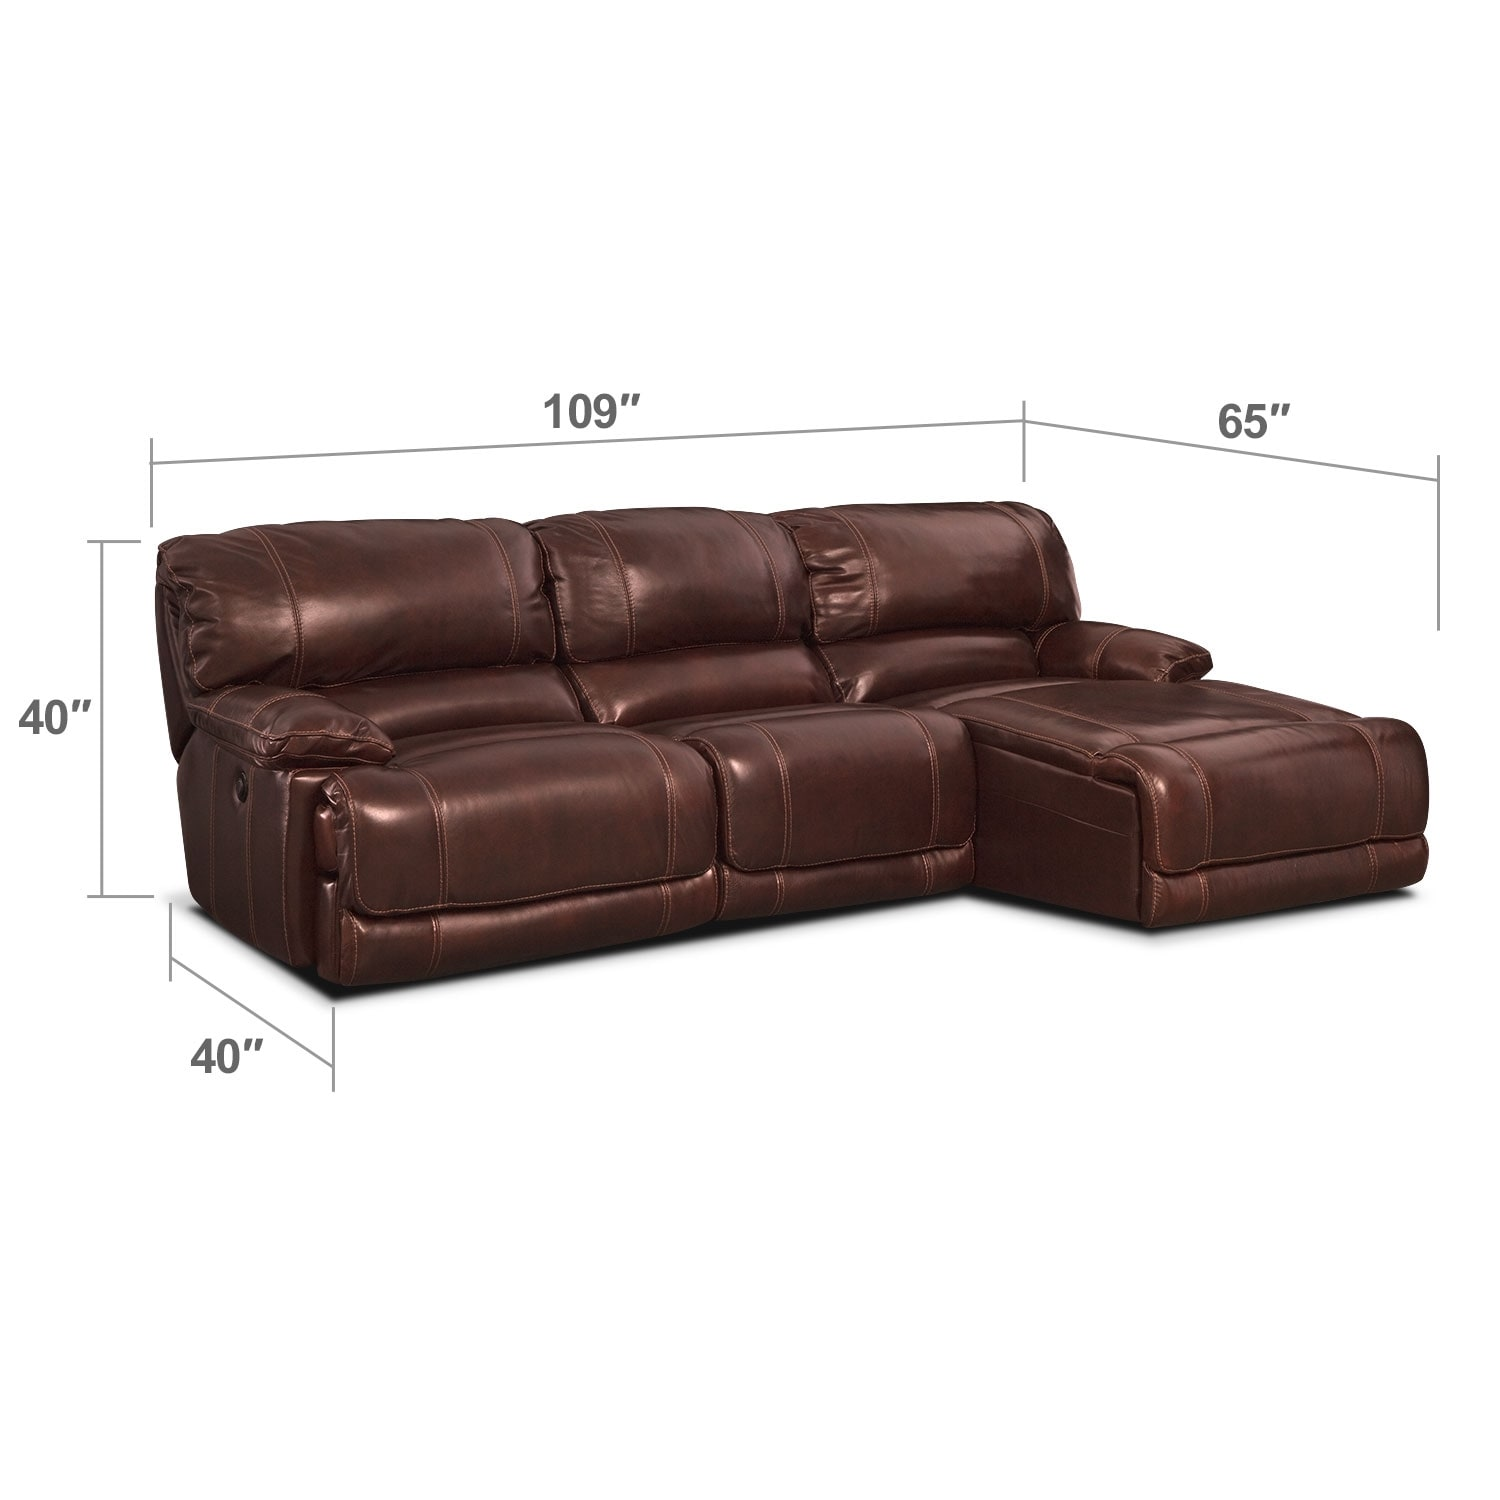 Living Room Furniture - Clinton Burgundy 3 Pc. Power Reclining Sectional